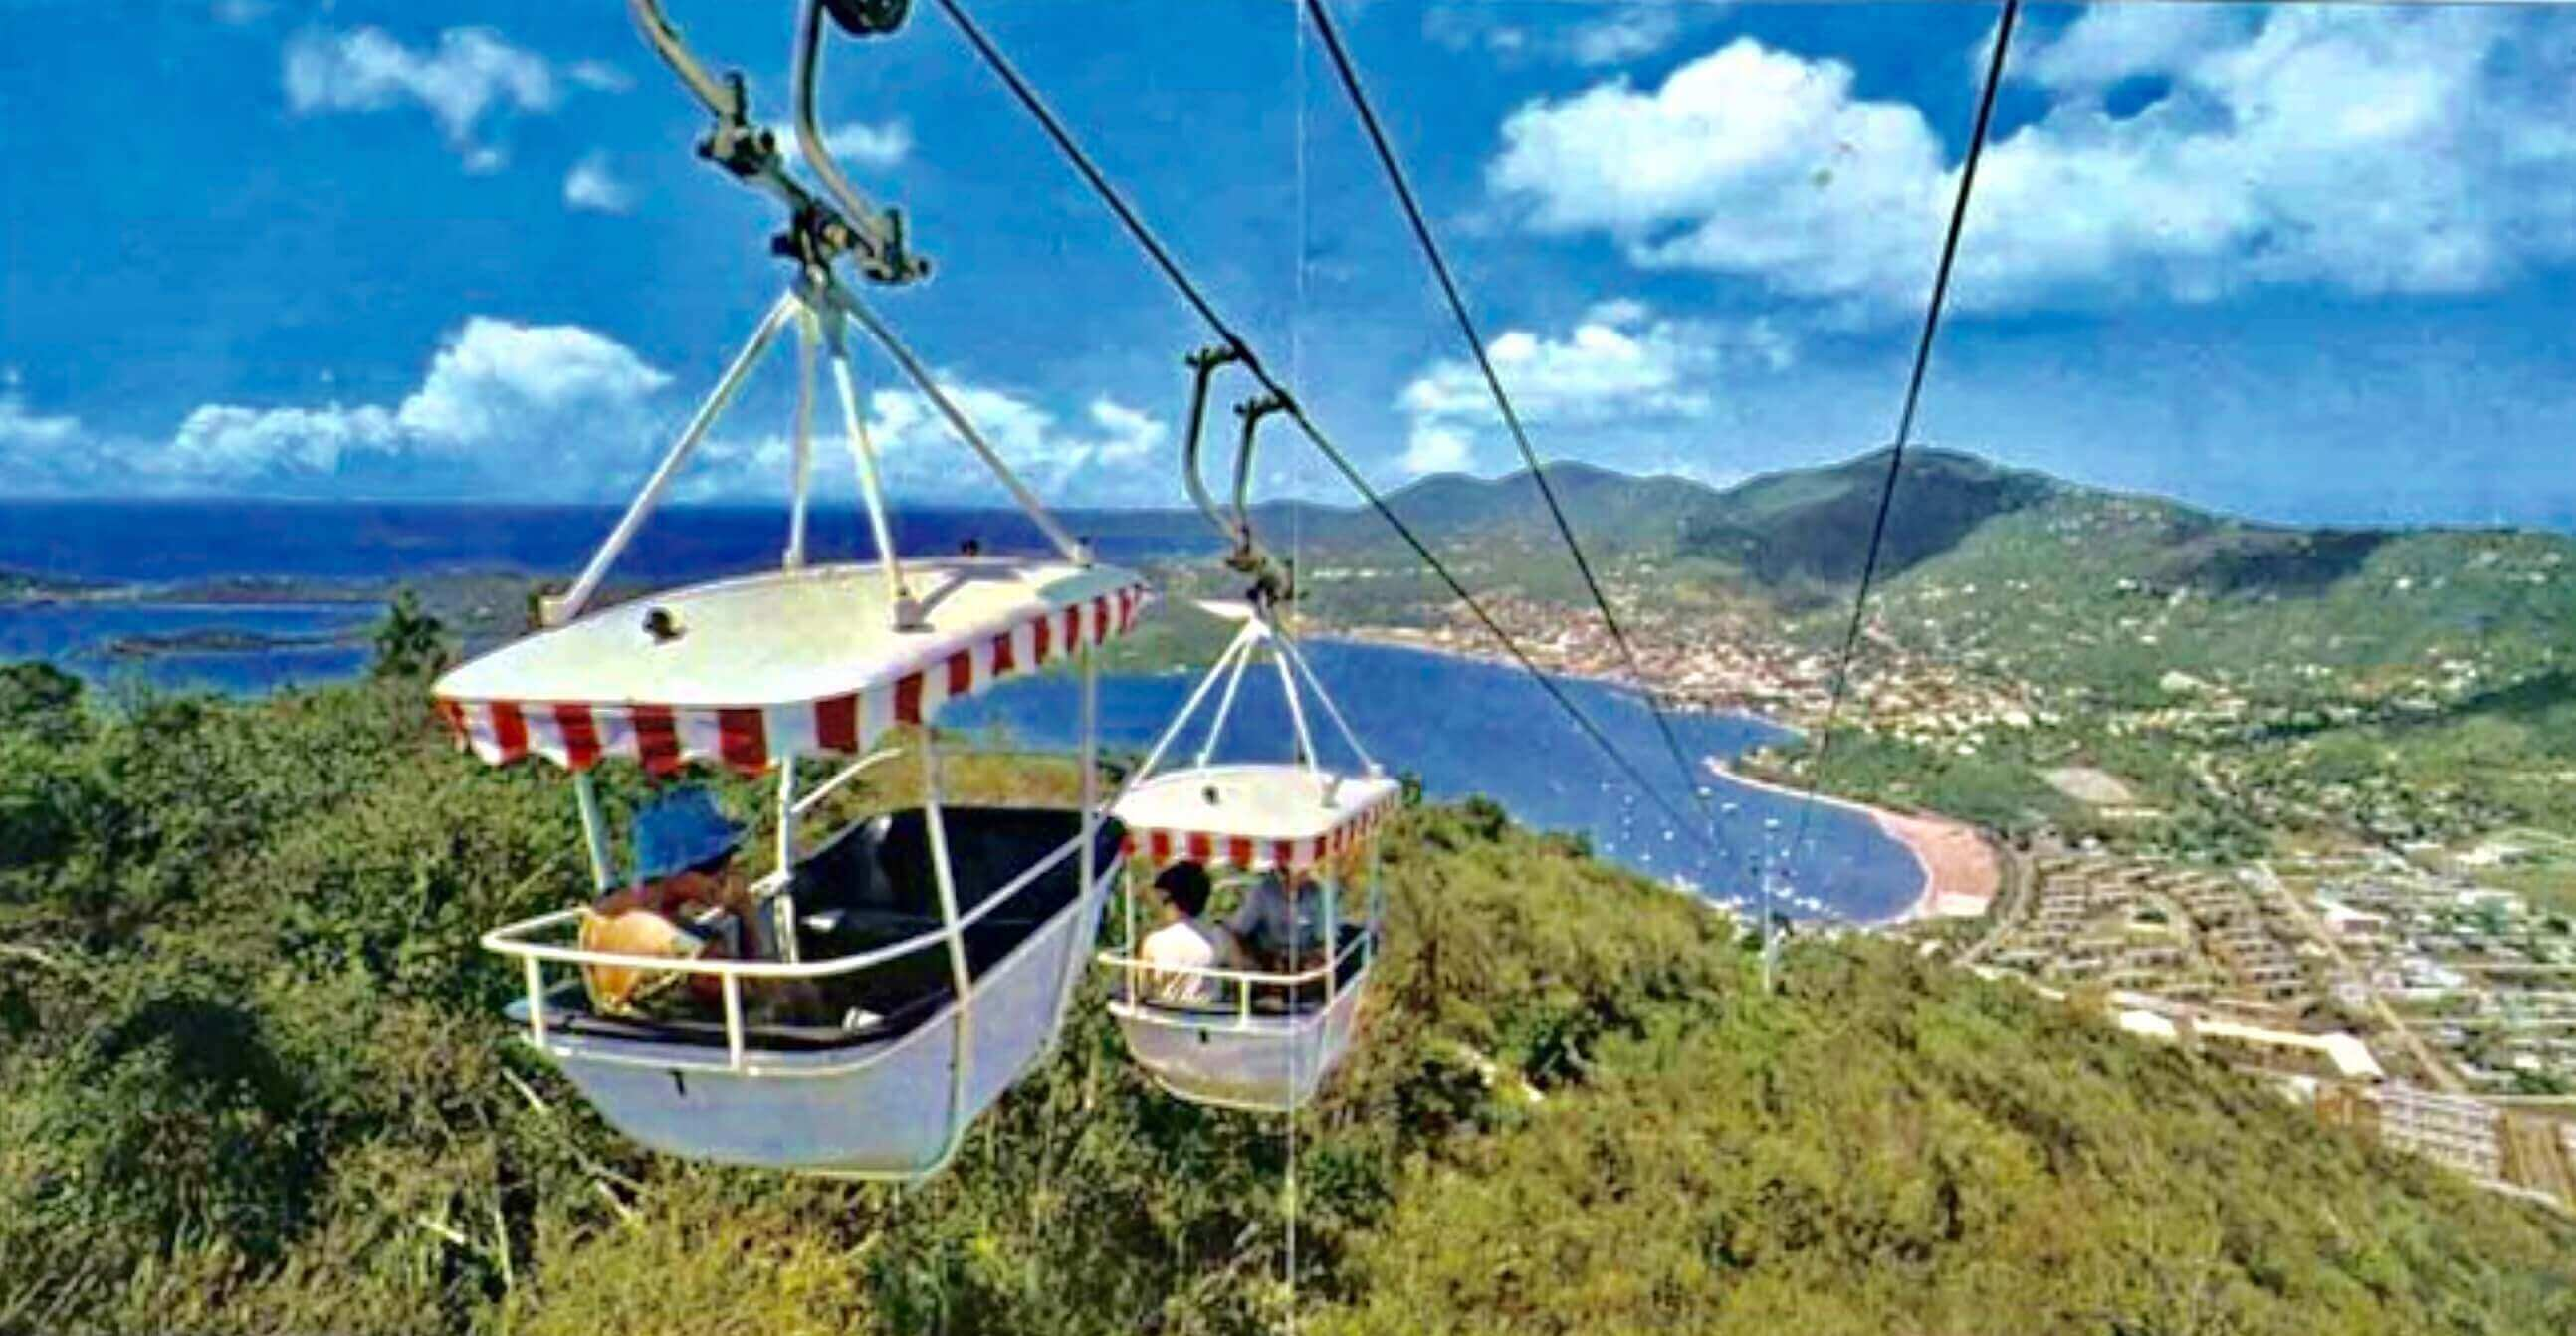 Tramway cablecar in St. Thomas, US Virgin Islands